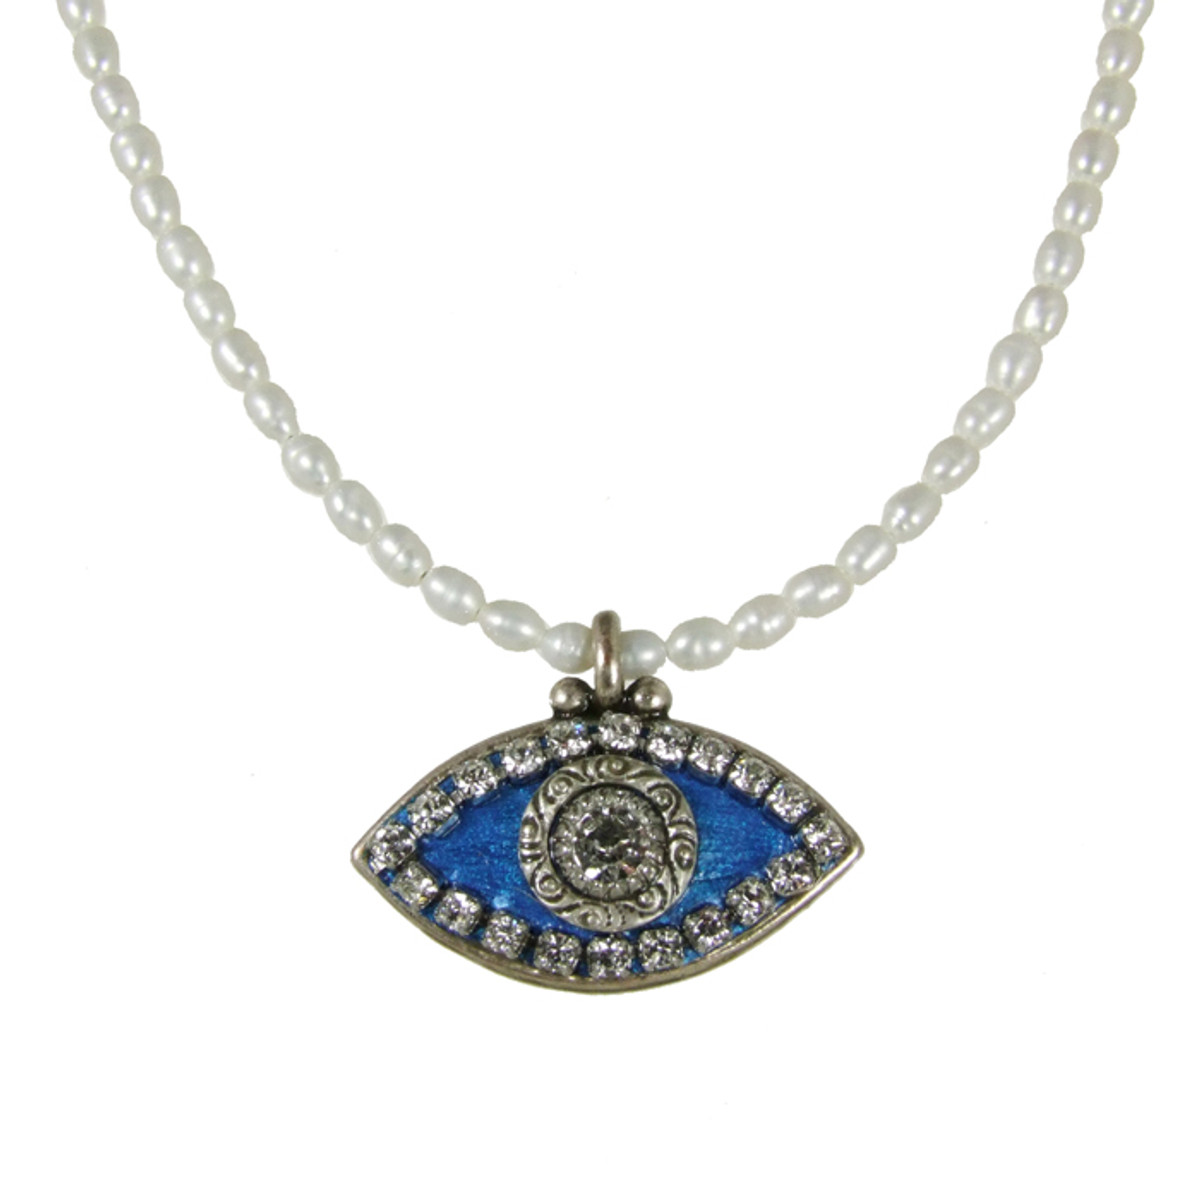 Evil Eye Necklace - Blue, Medium Eye With Crystals